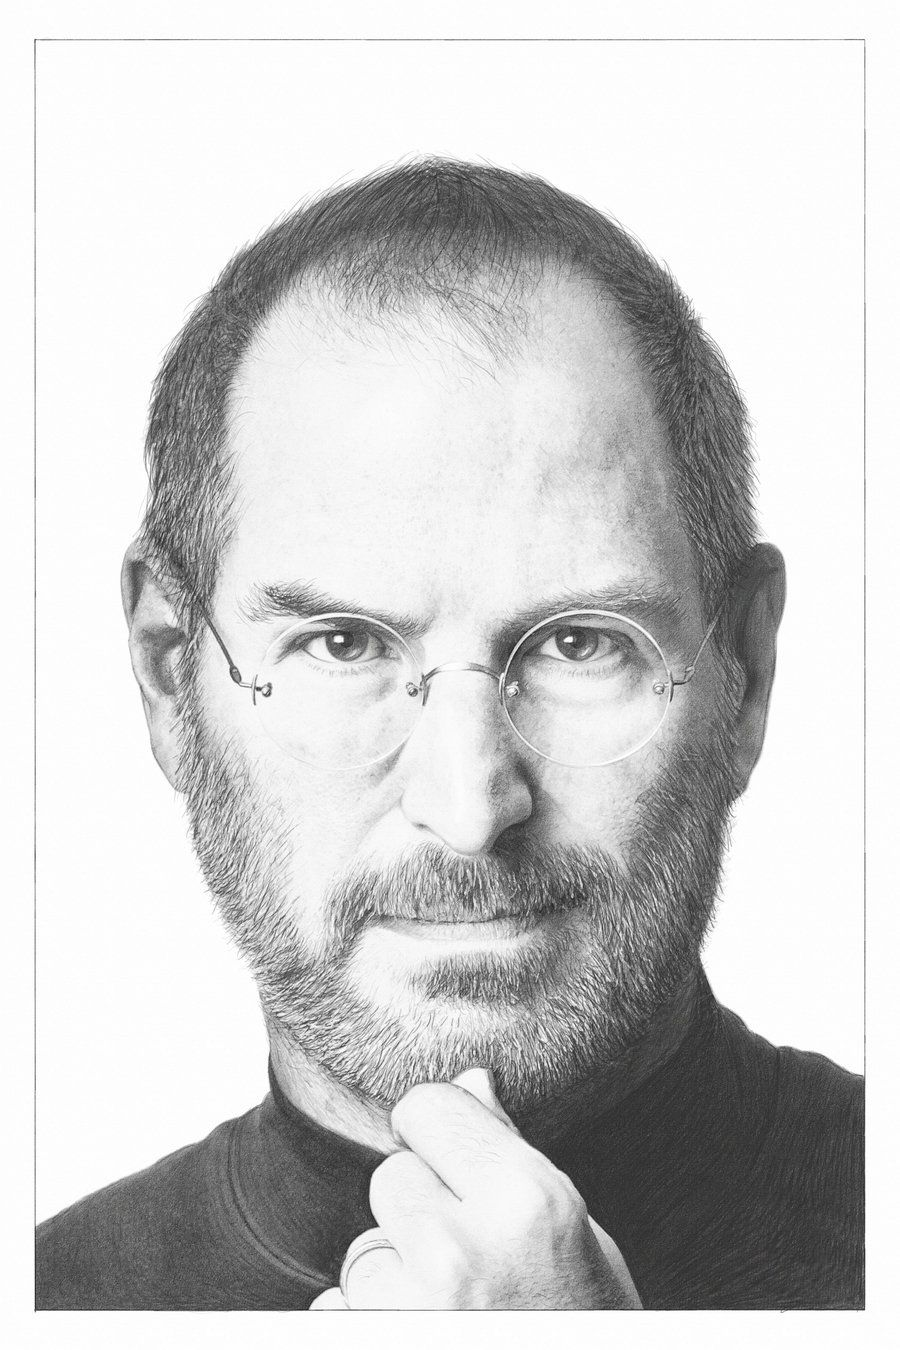 Steve Jobs - iLived by ~DreamStatic on deviantART